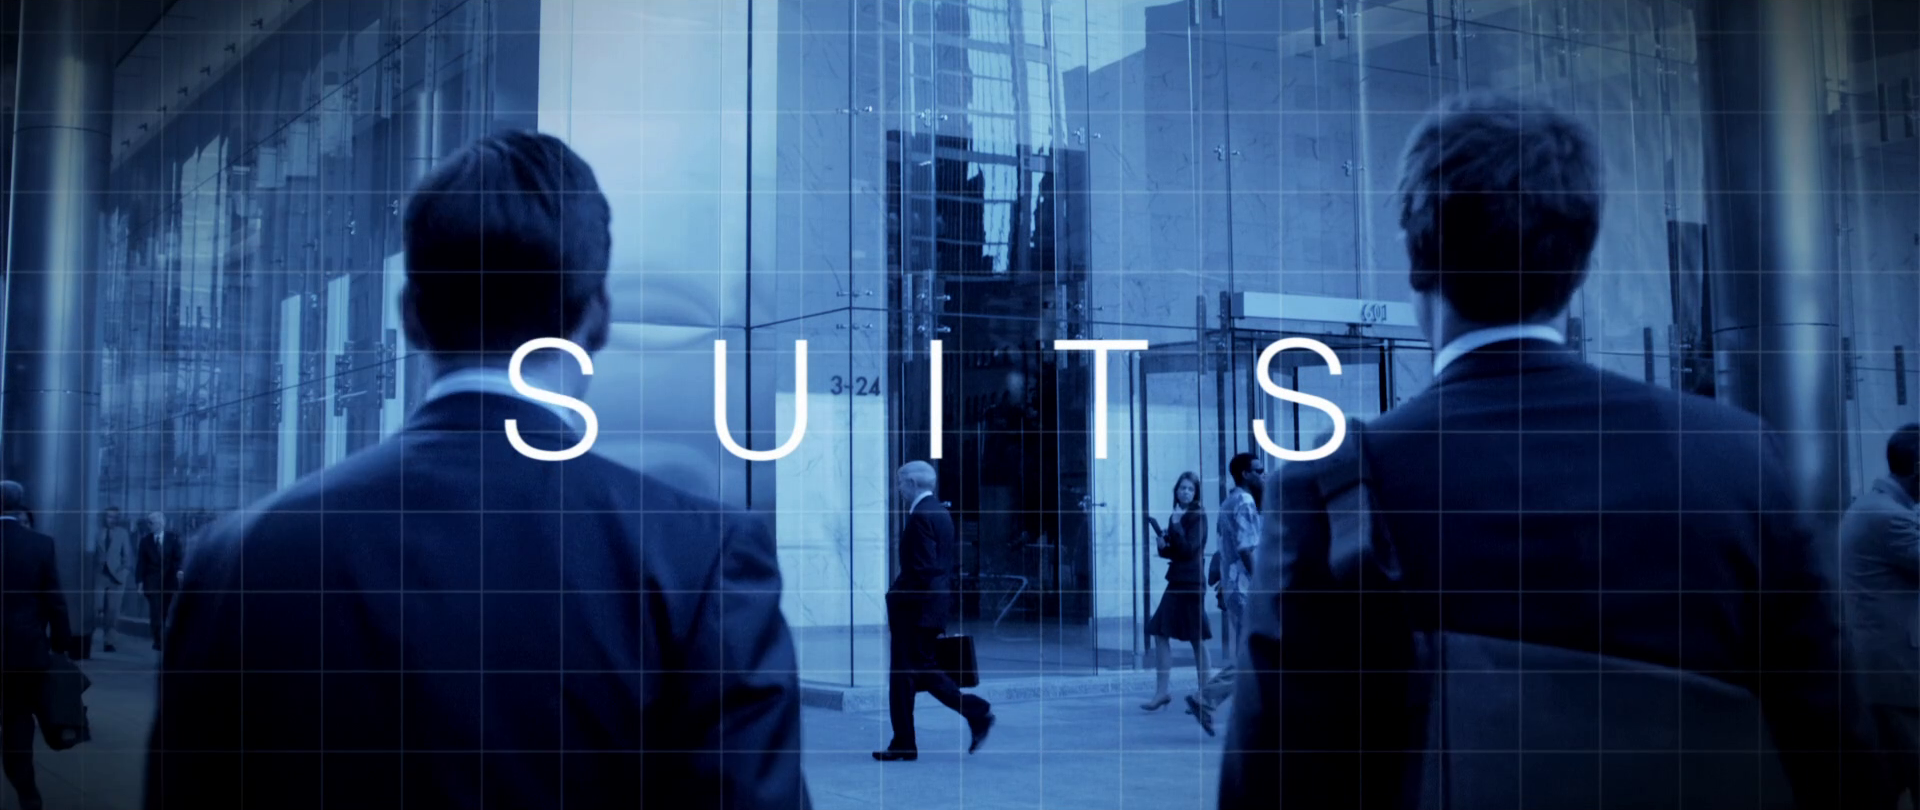 Datei:SUITS Title Card 01.png